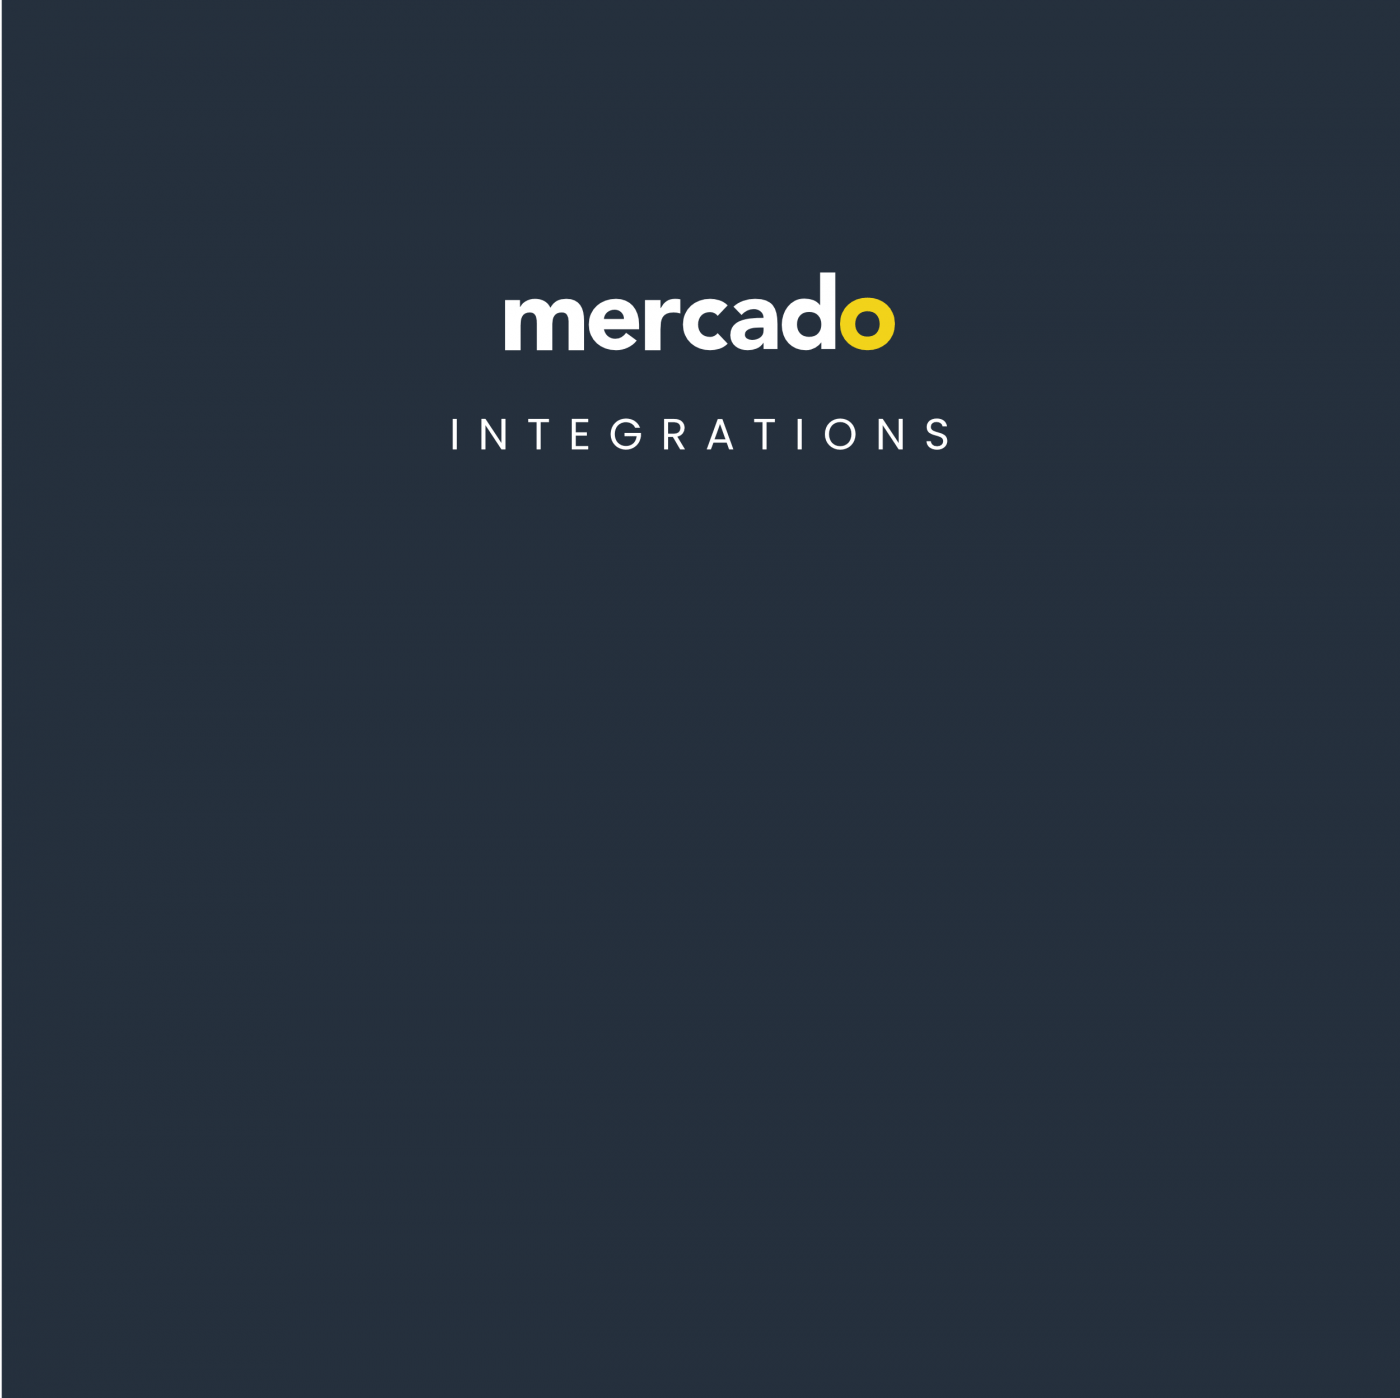 Mercado | News - Partnership with Chain.io